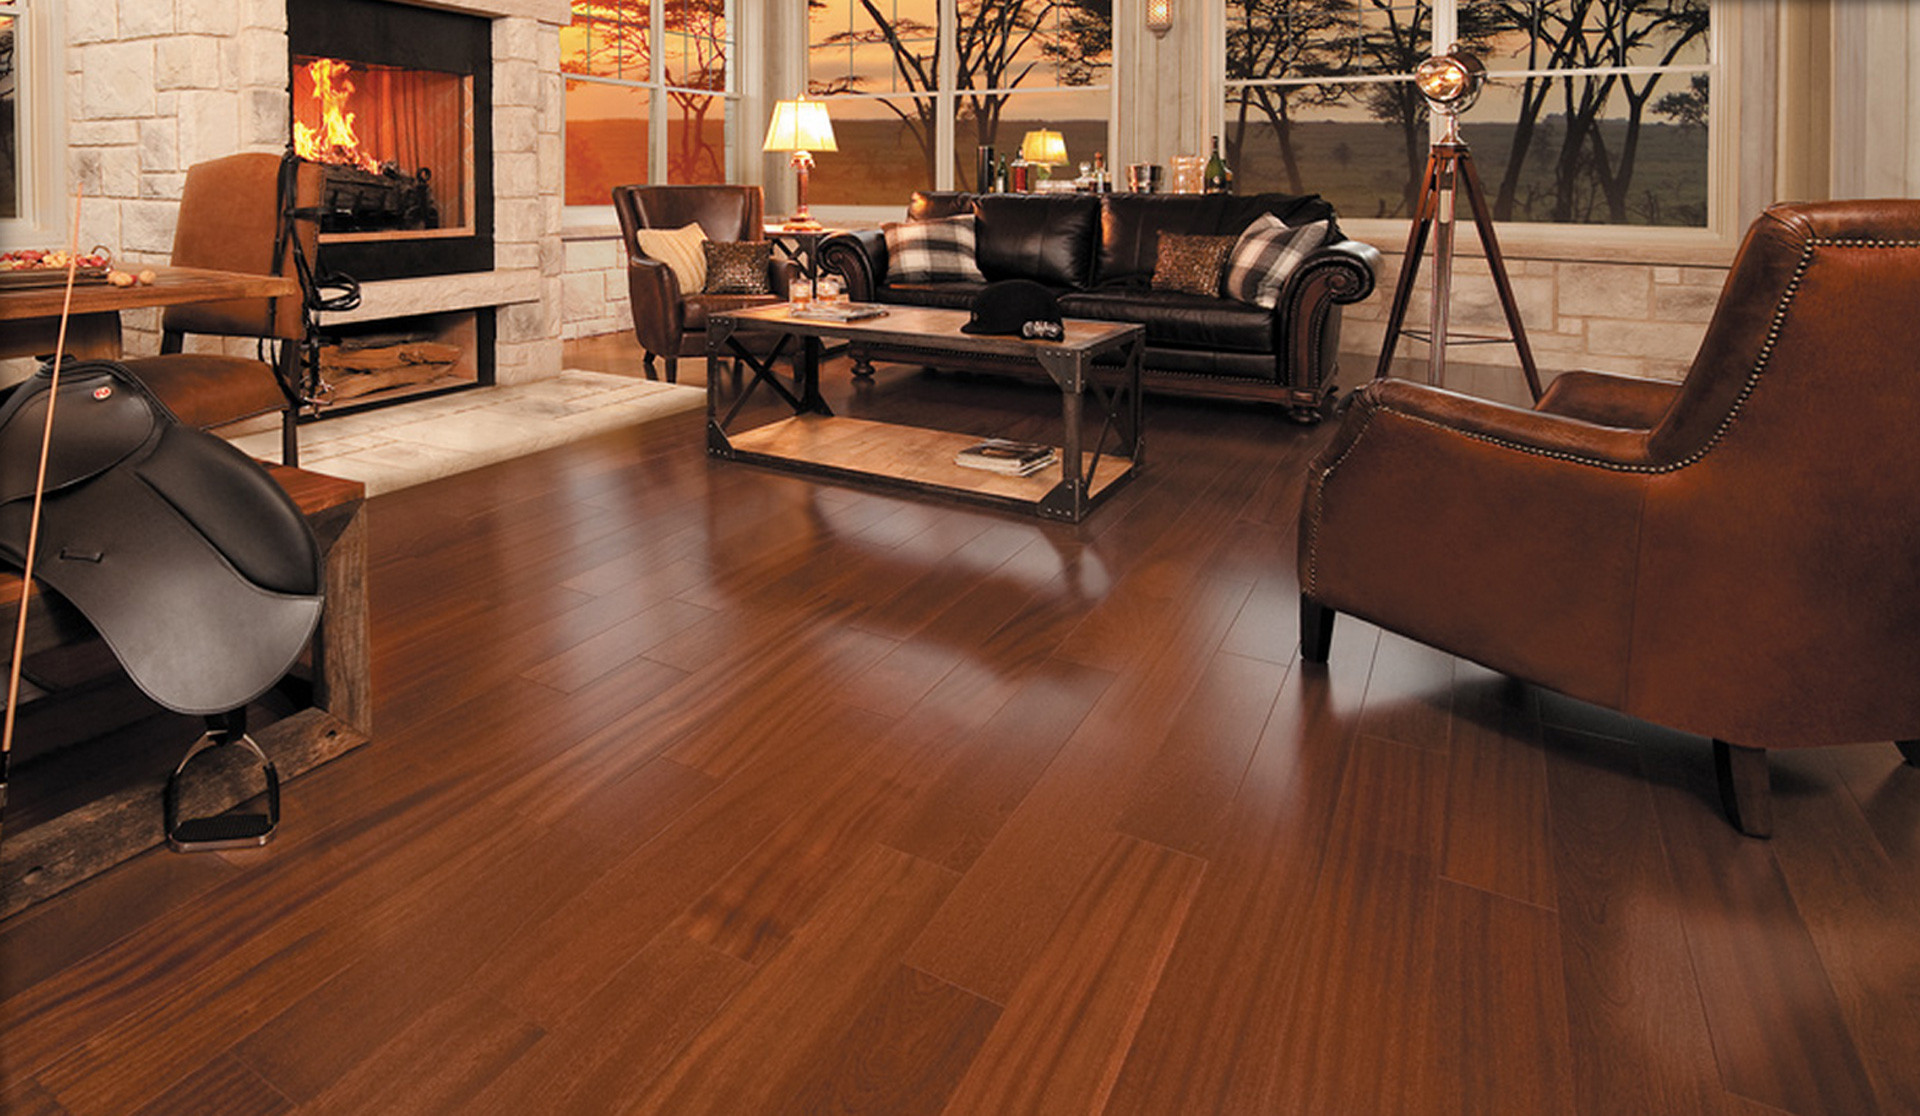 hardwood flooring fairfield nj of westwood flooring tile granite carpeting more with design with custom antique and reclaimed wood